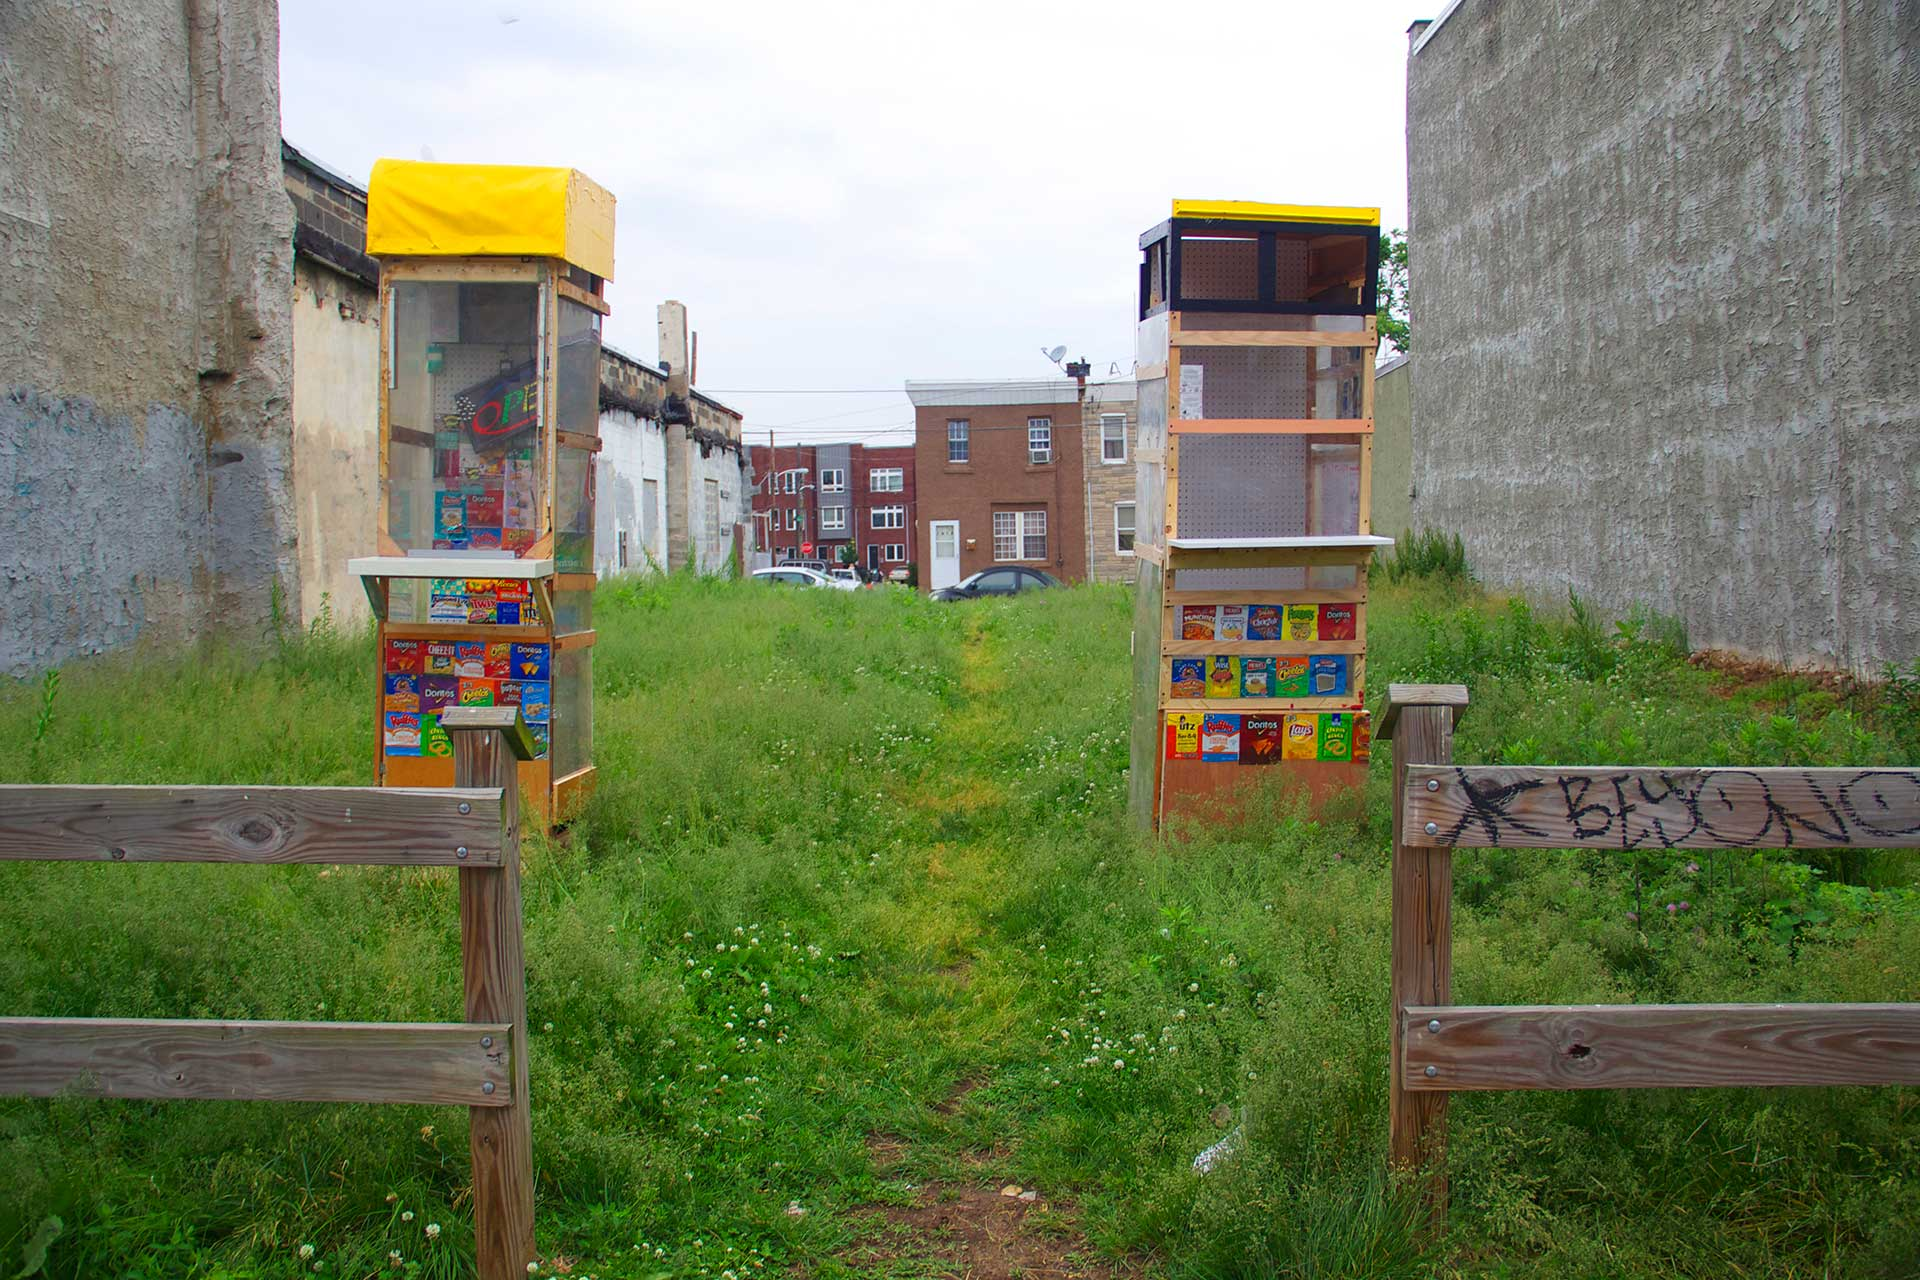 Two wooden, handmade ticket booths stand in a grassy lot.